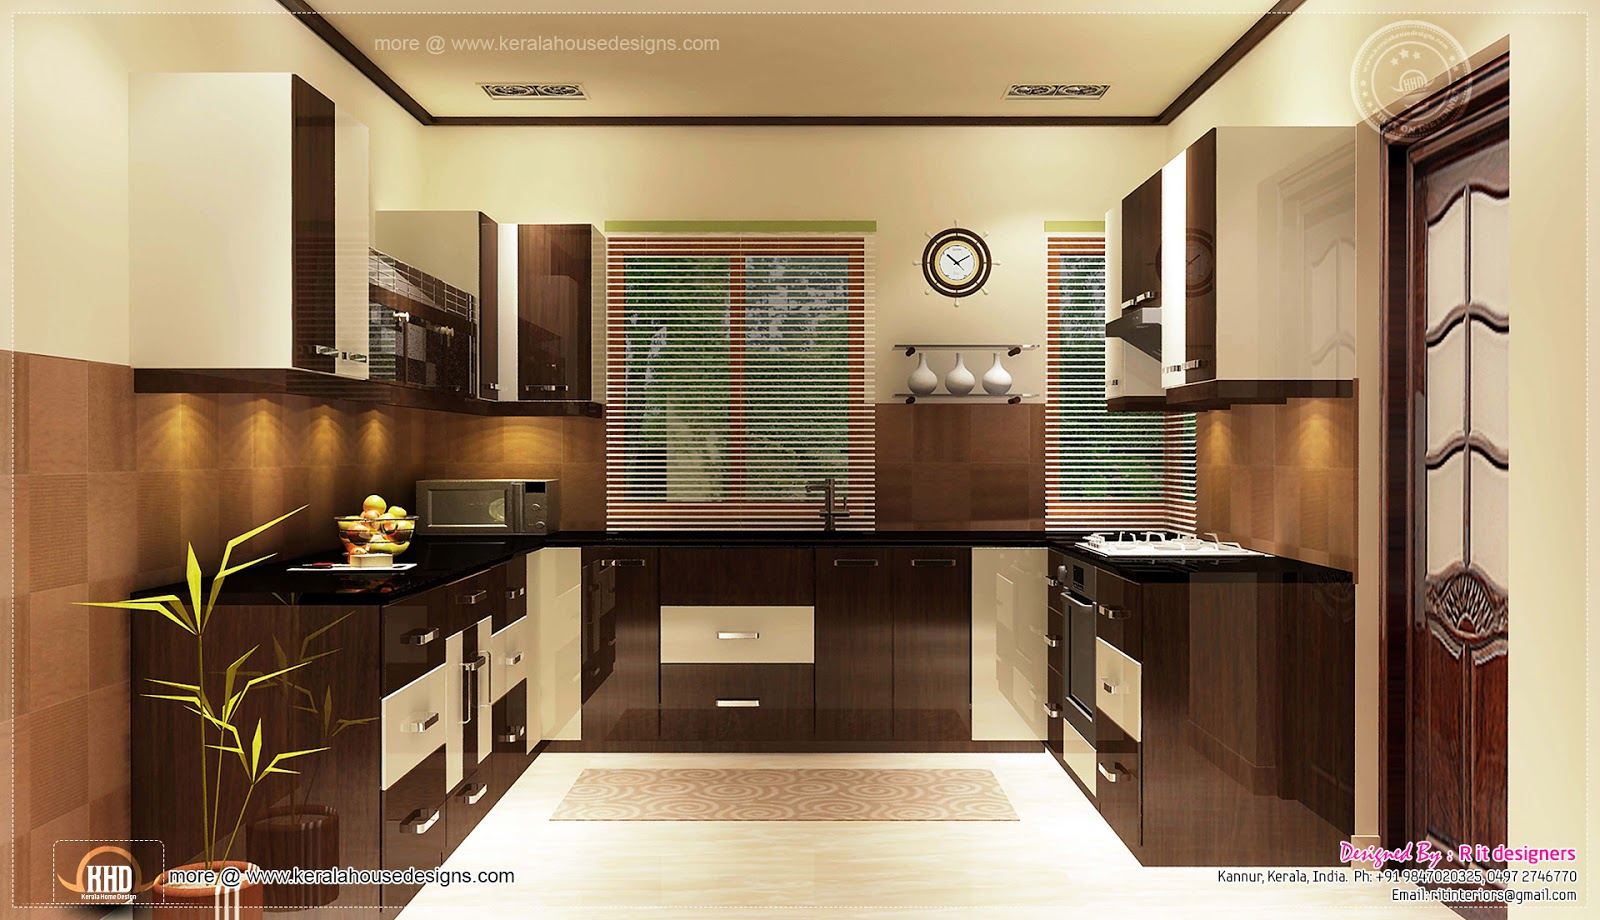 Home interior designs by rit designers kerala home Interiors for homes